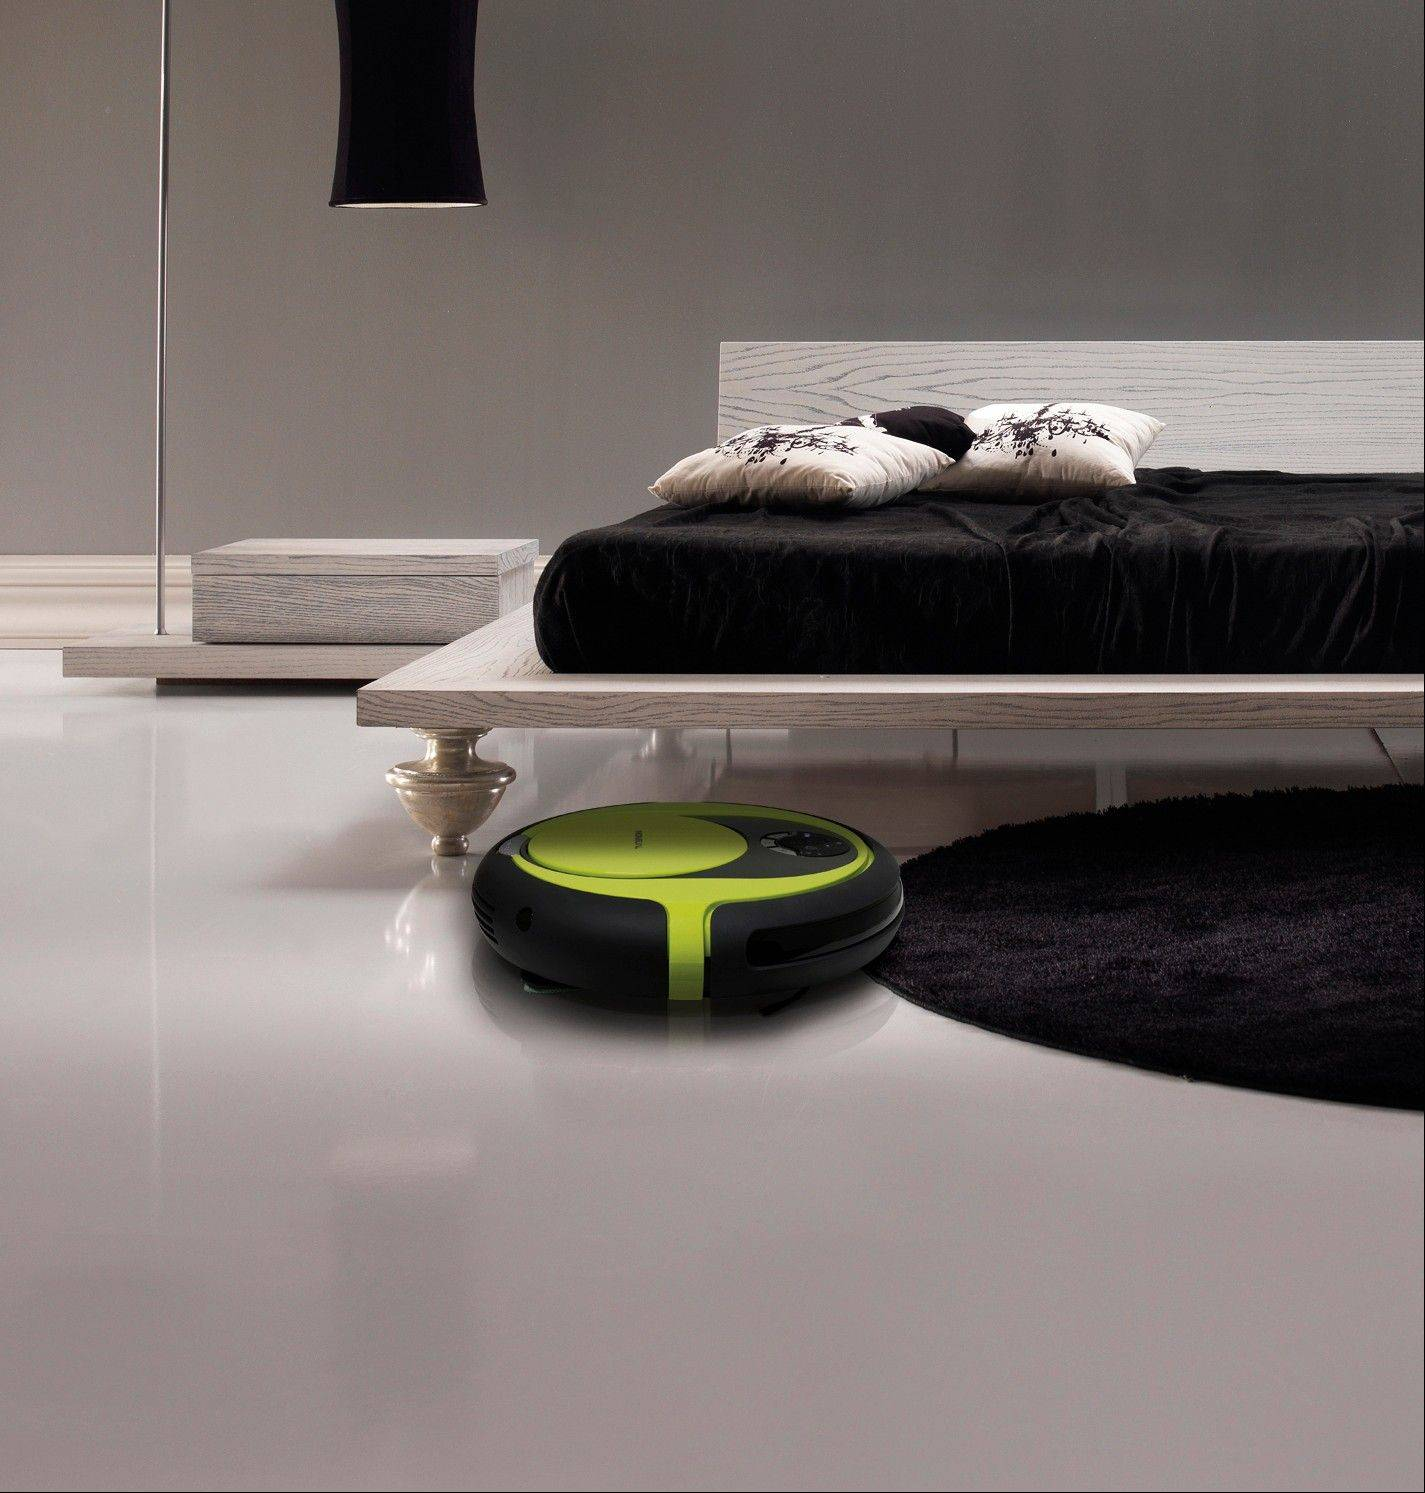 The Rydis robot vacuum from Moneualusa.com which has several cleaning settings, including an option to schedule a clean while you are away and a room indicator system to custom design the vacuuming intensity in different parts of the room.